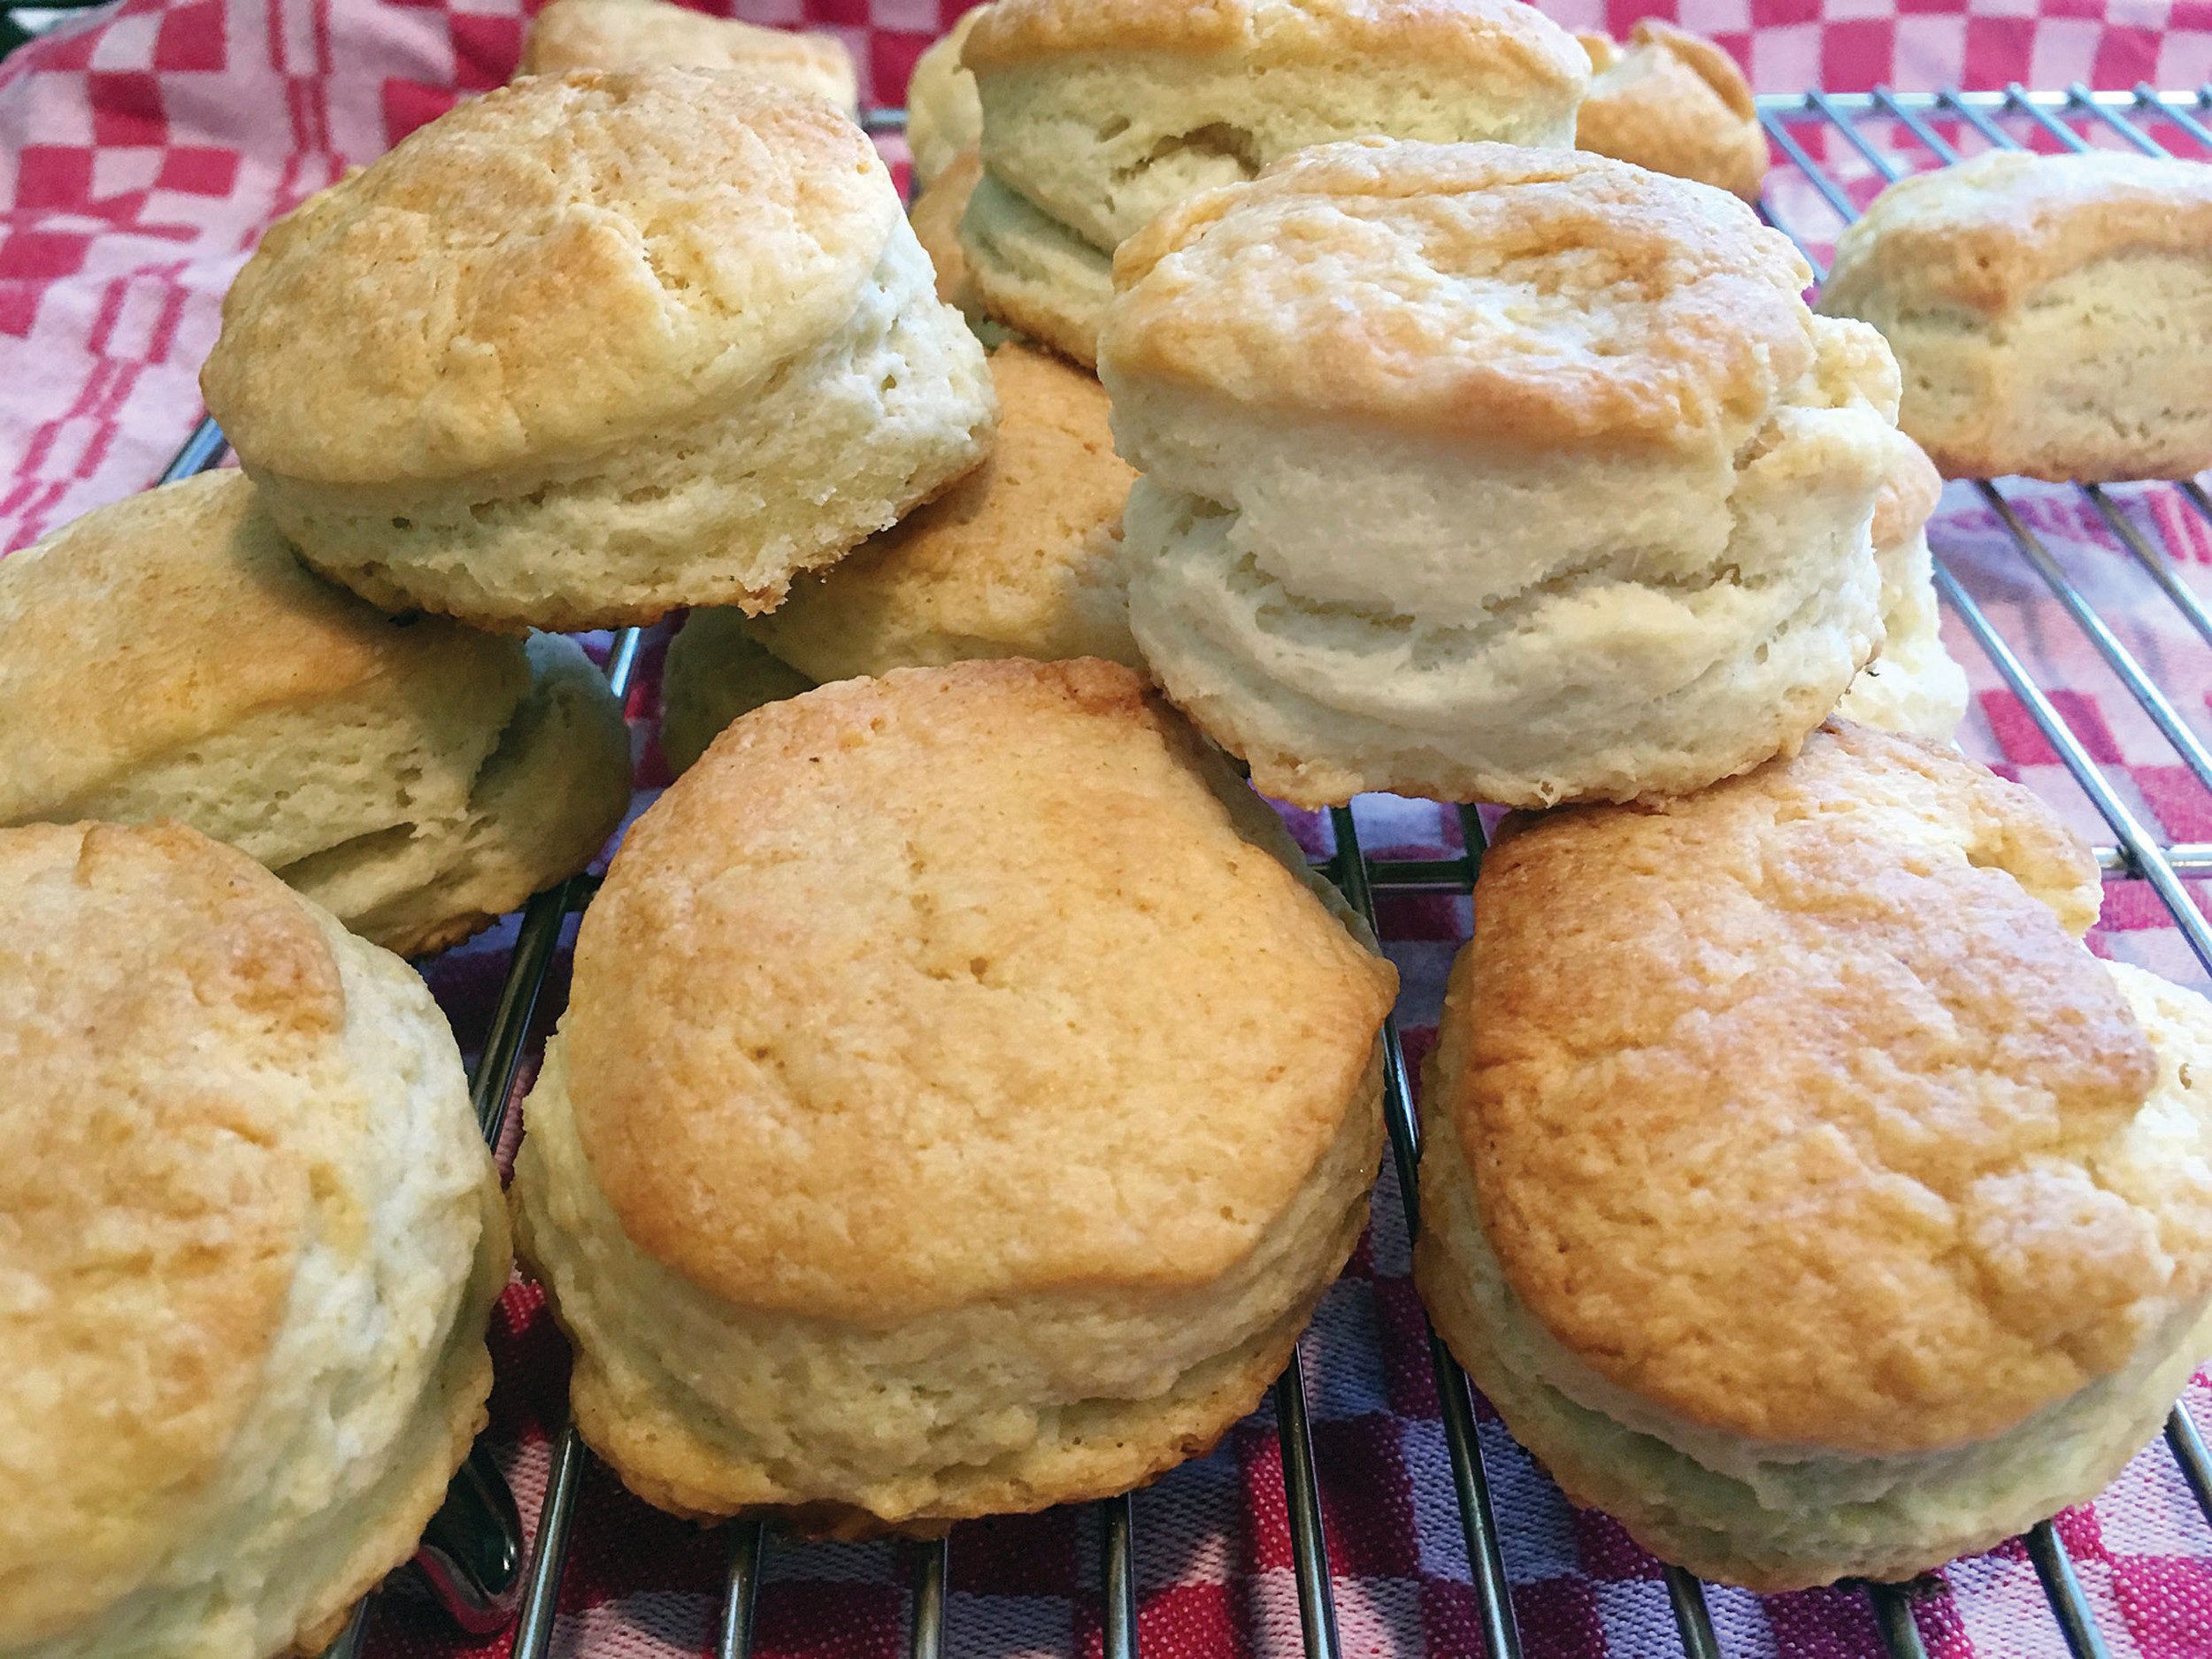 This Oct. 13, 2017 photo shows Elizabeth Karmel's simple three-ingredient recipe buttermilk biscuits. The biscuits use self-rising flour, lard and real buttermilk. Once the biscuits are cut, and on the cookie sheet, the tops are brushed with melted butter before and after baking. (AP Photo/Elizabeth Karmel)